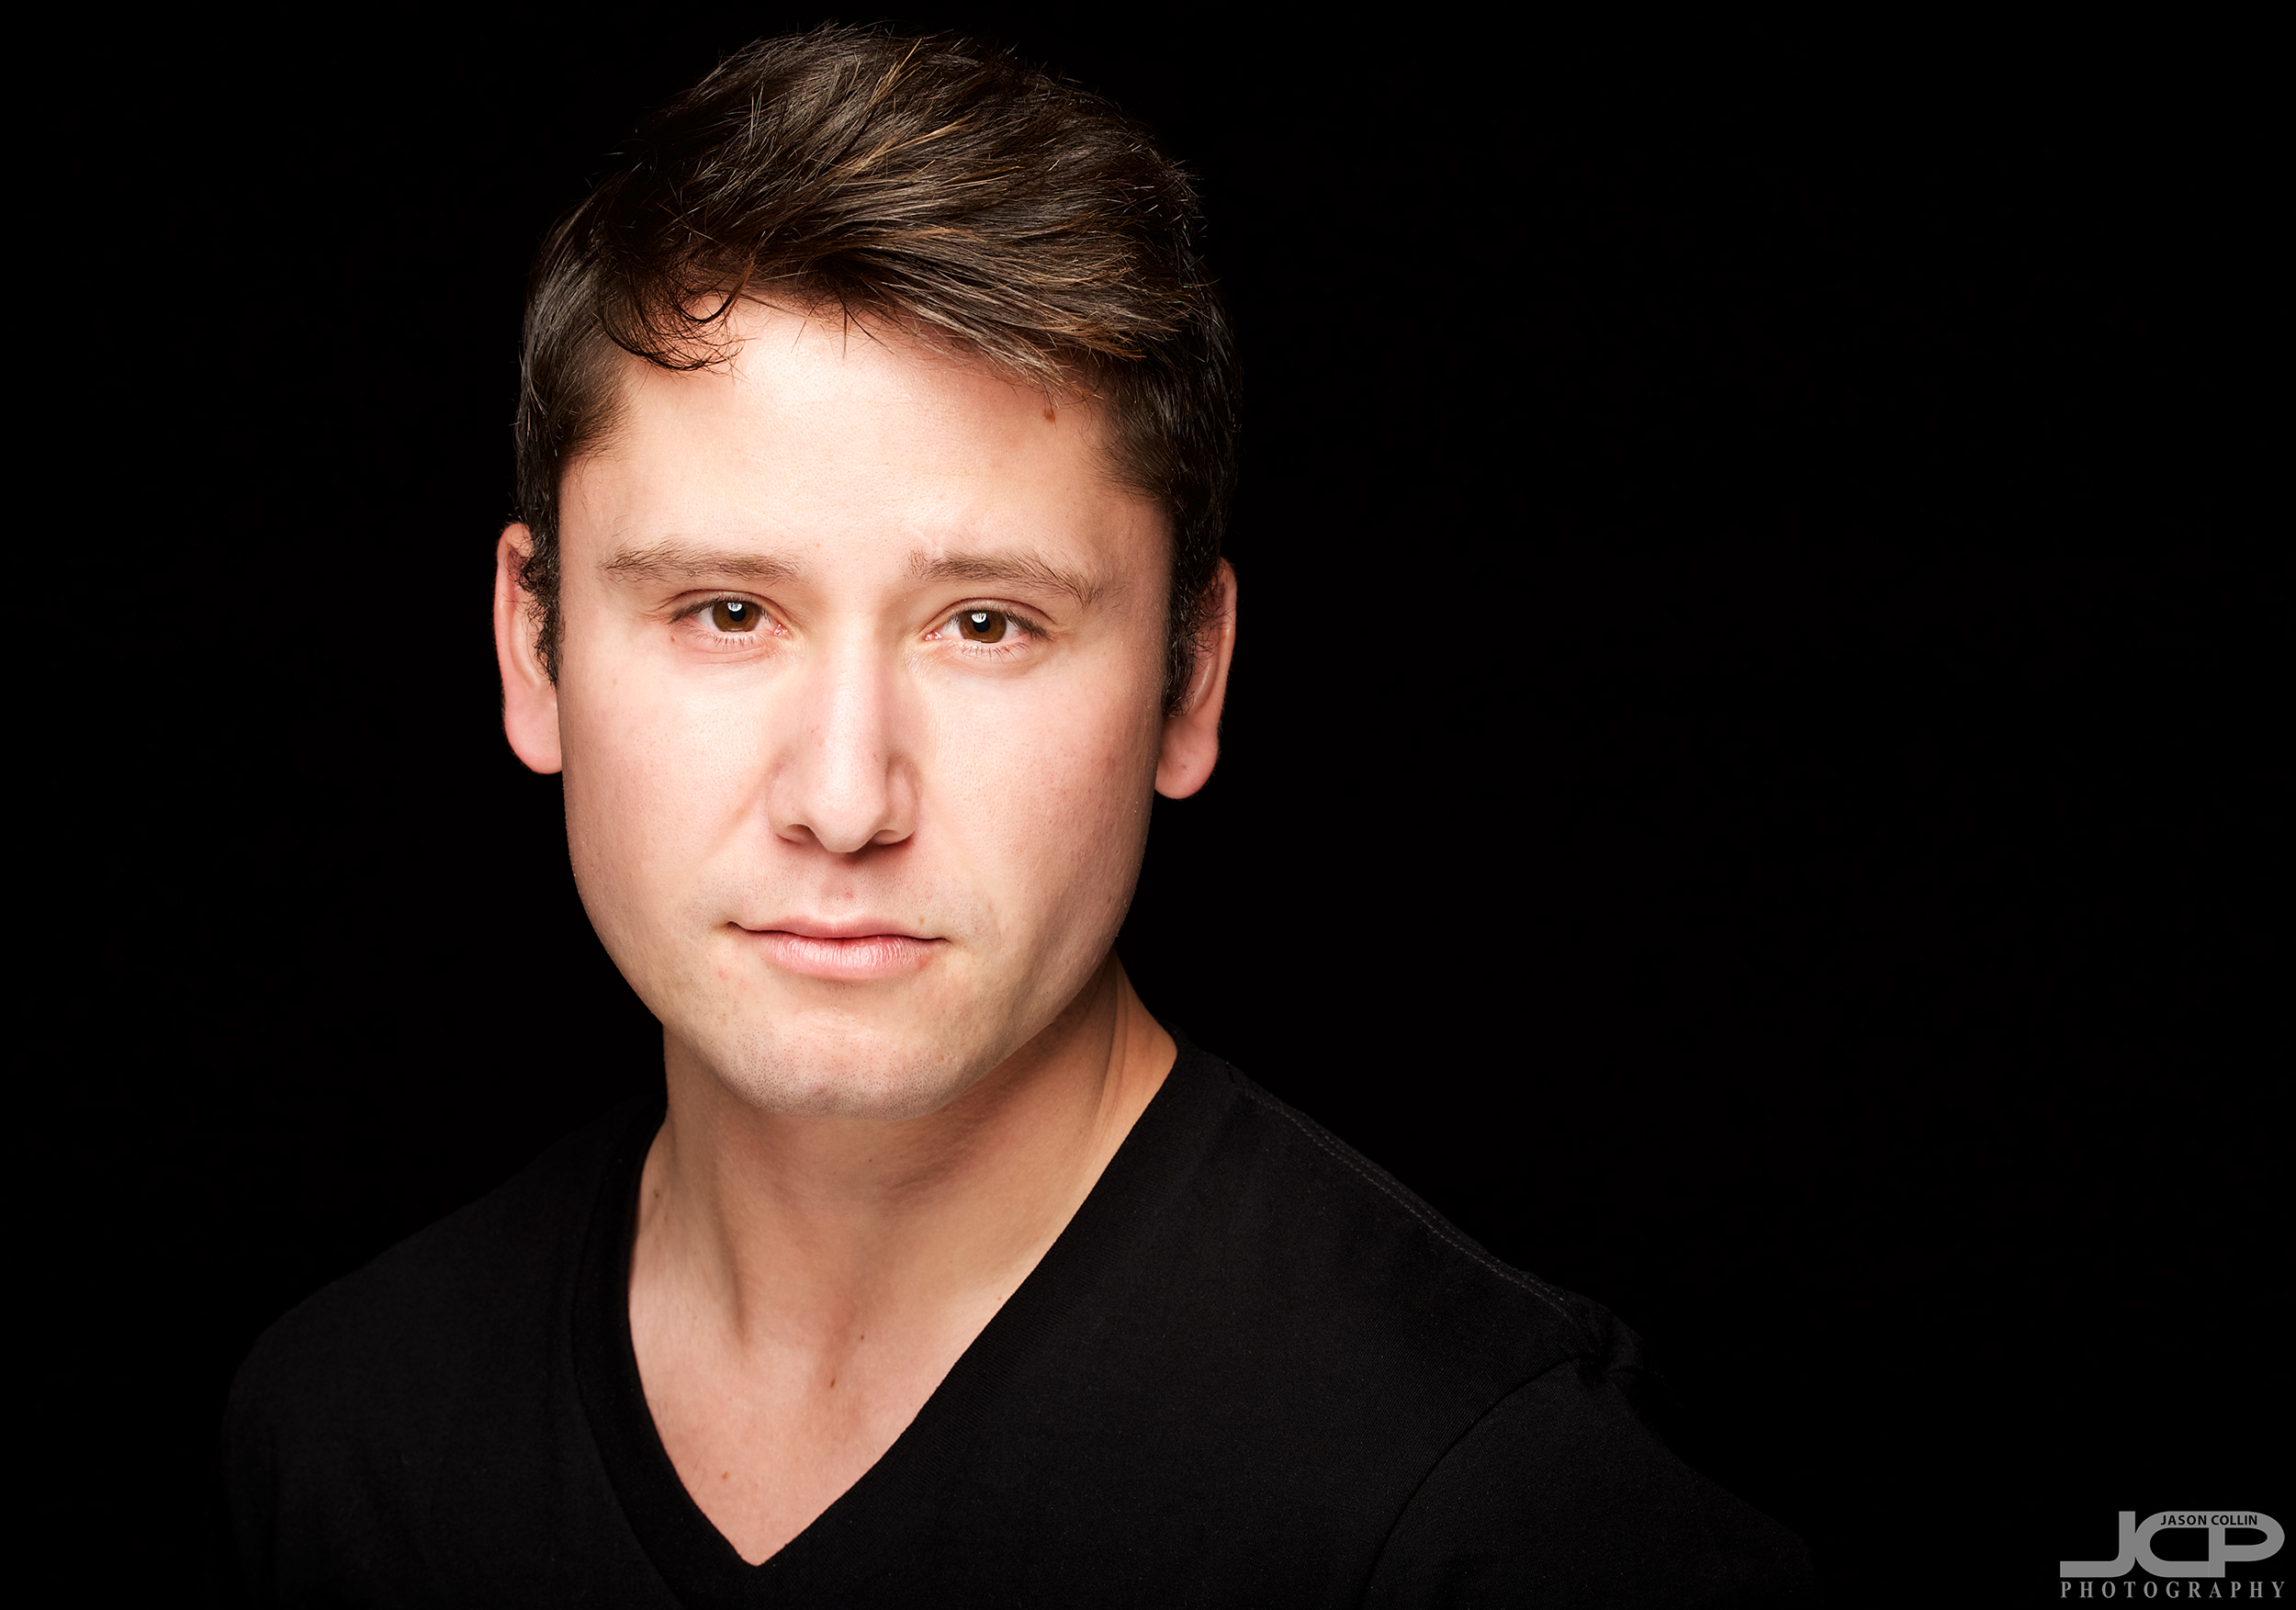 Jake returns to the JCP Home Studio for more actor headshots in Albuquerque New Mexico